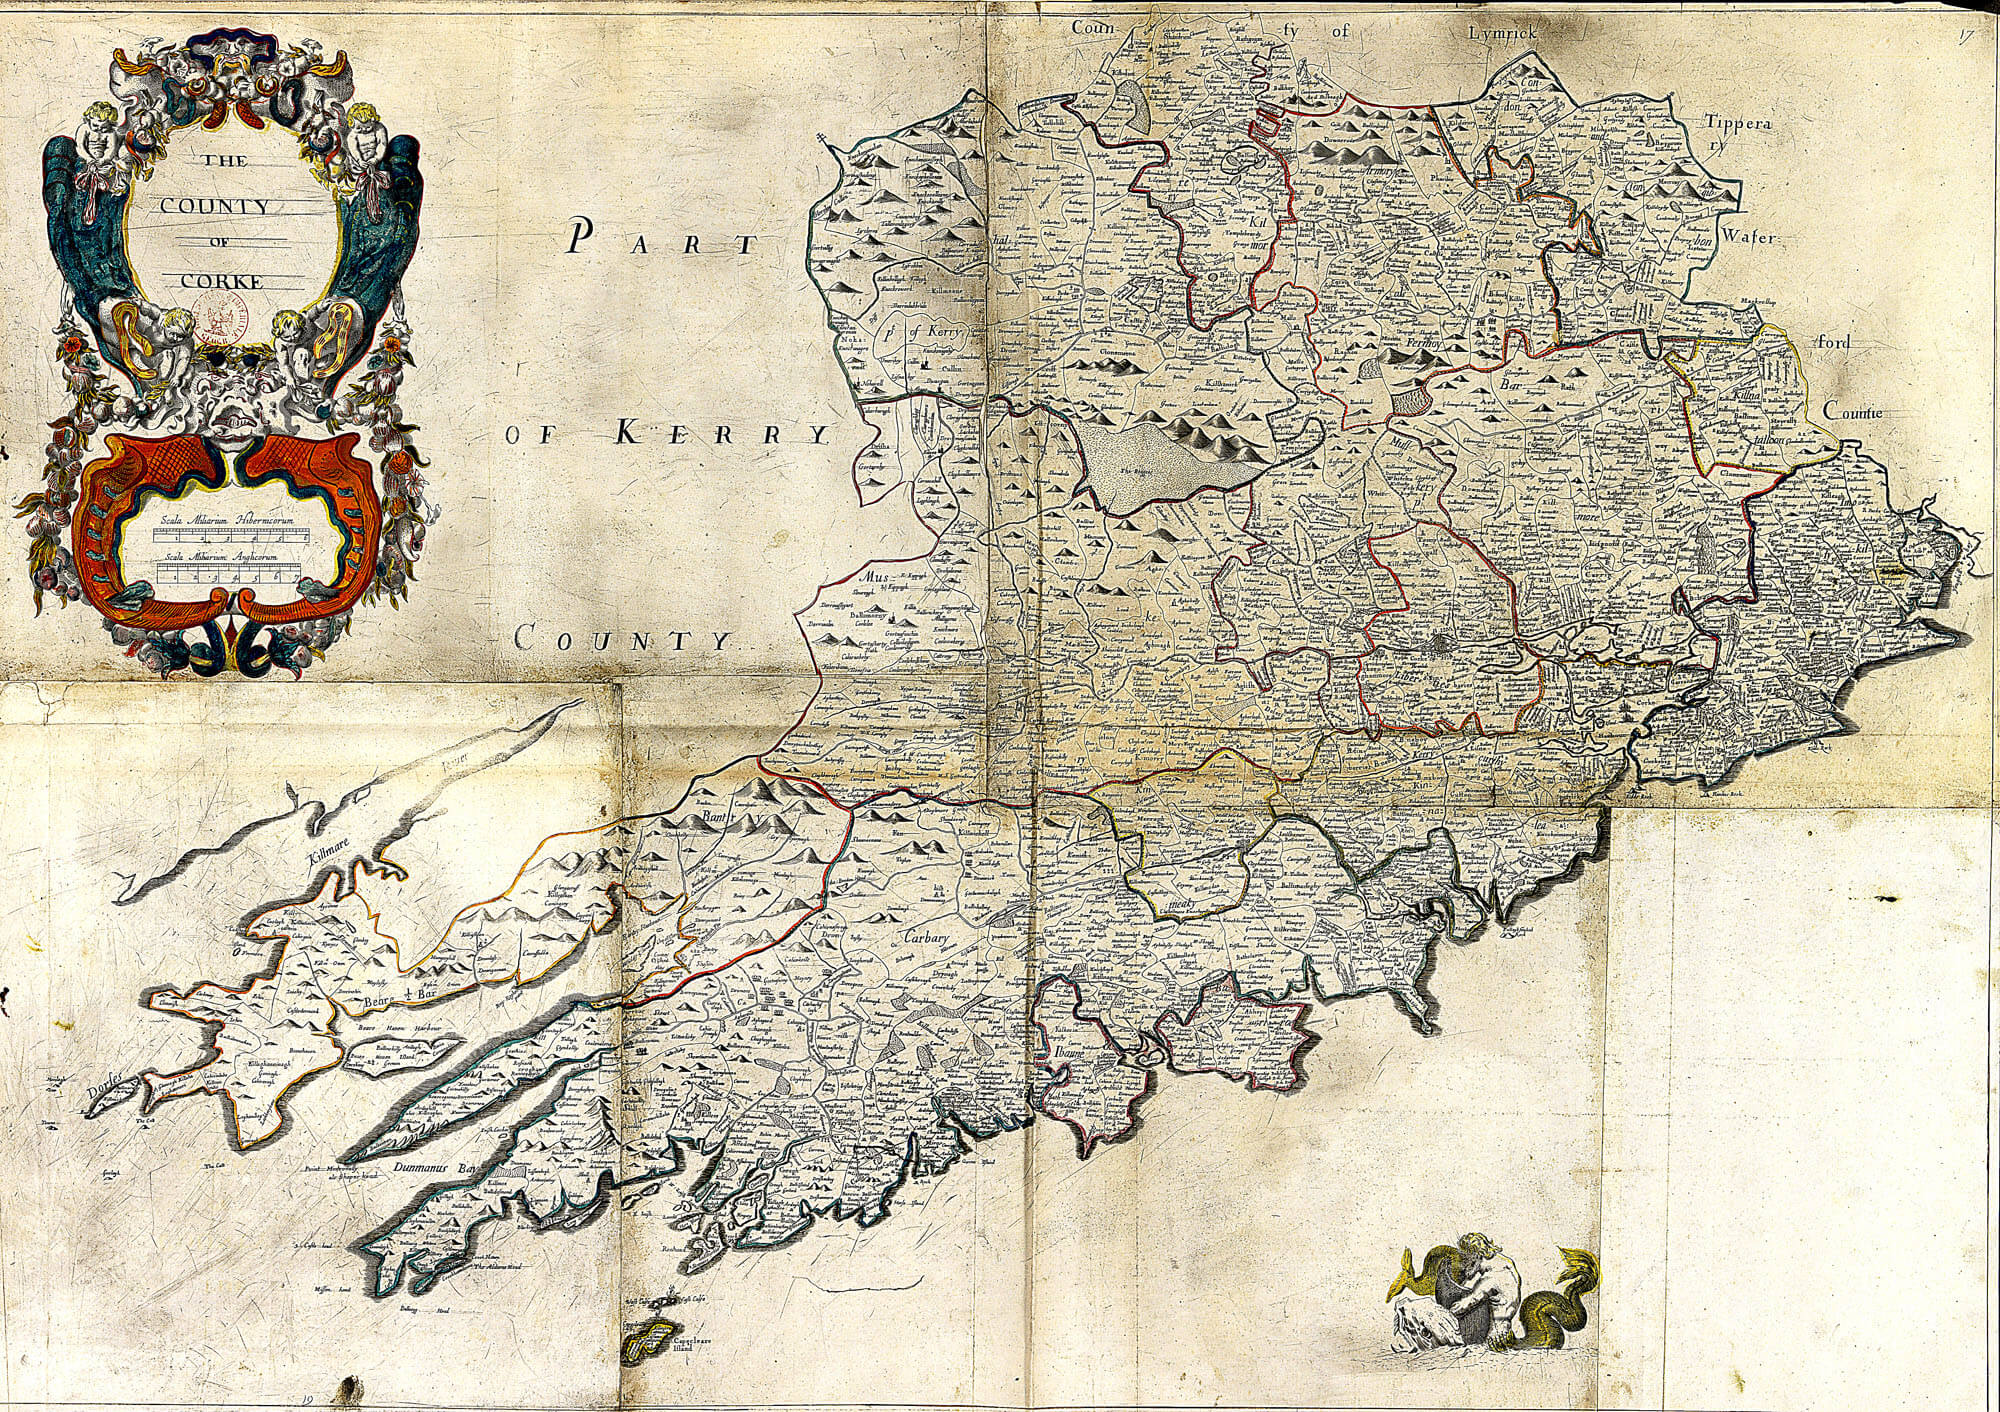 Map Of Cork County Ireland.Ireland Barony Maps County Cork L Brown Collection